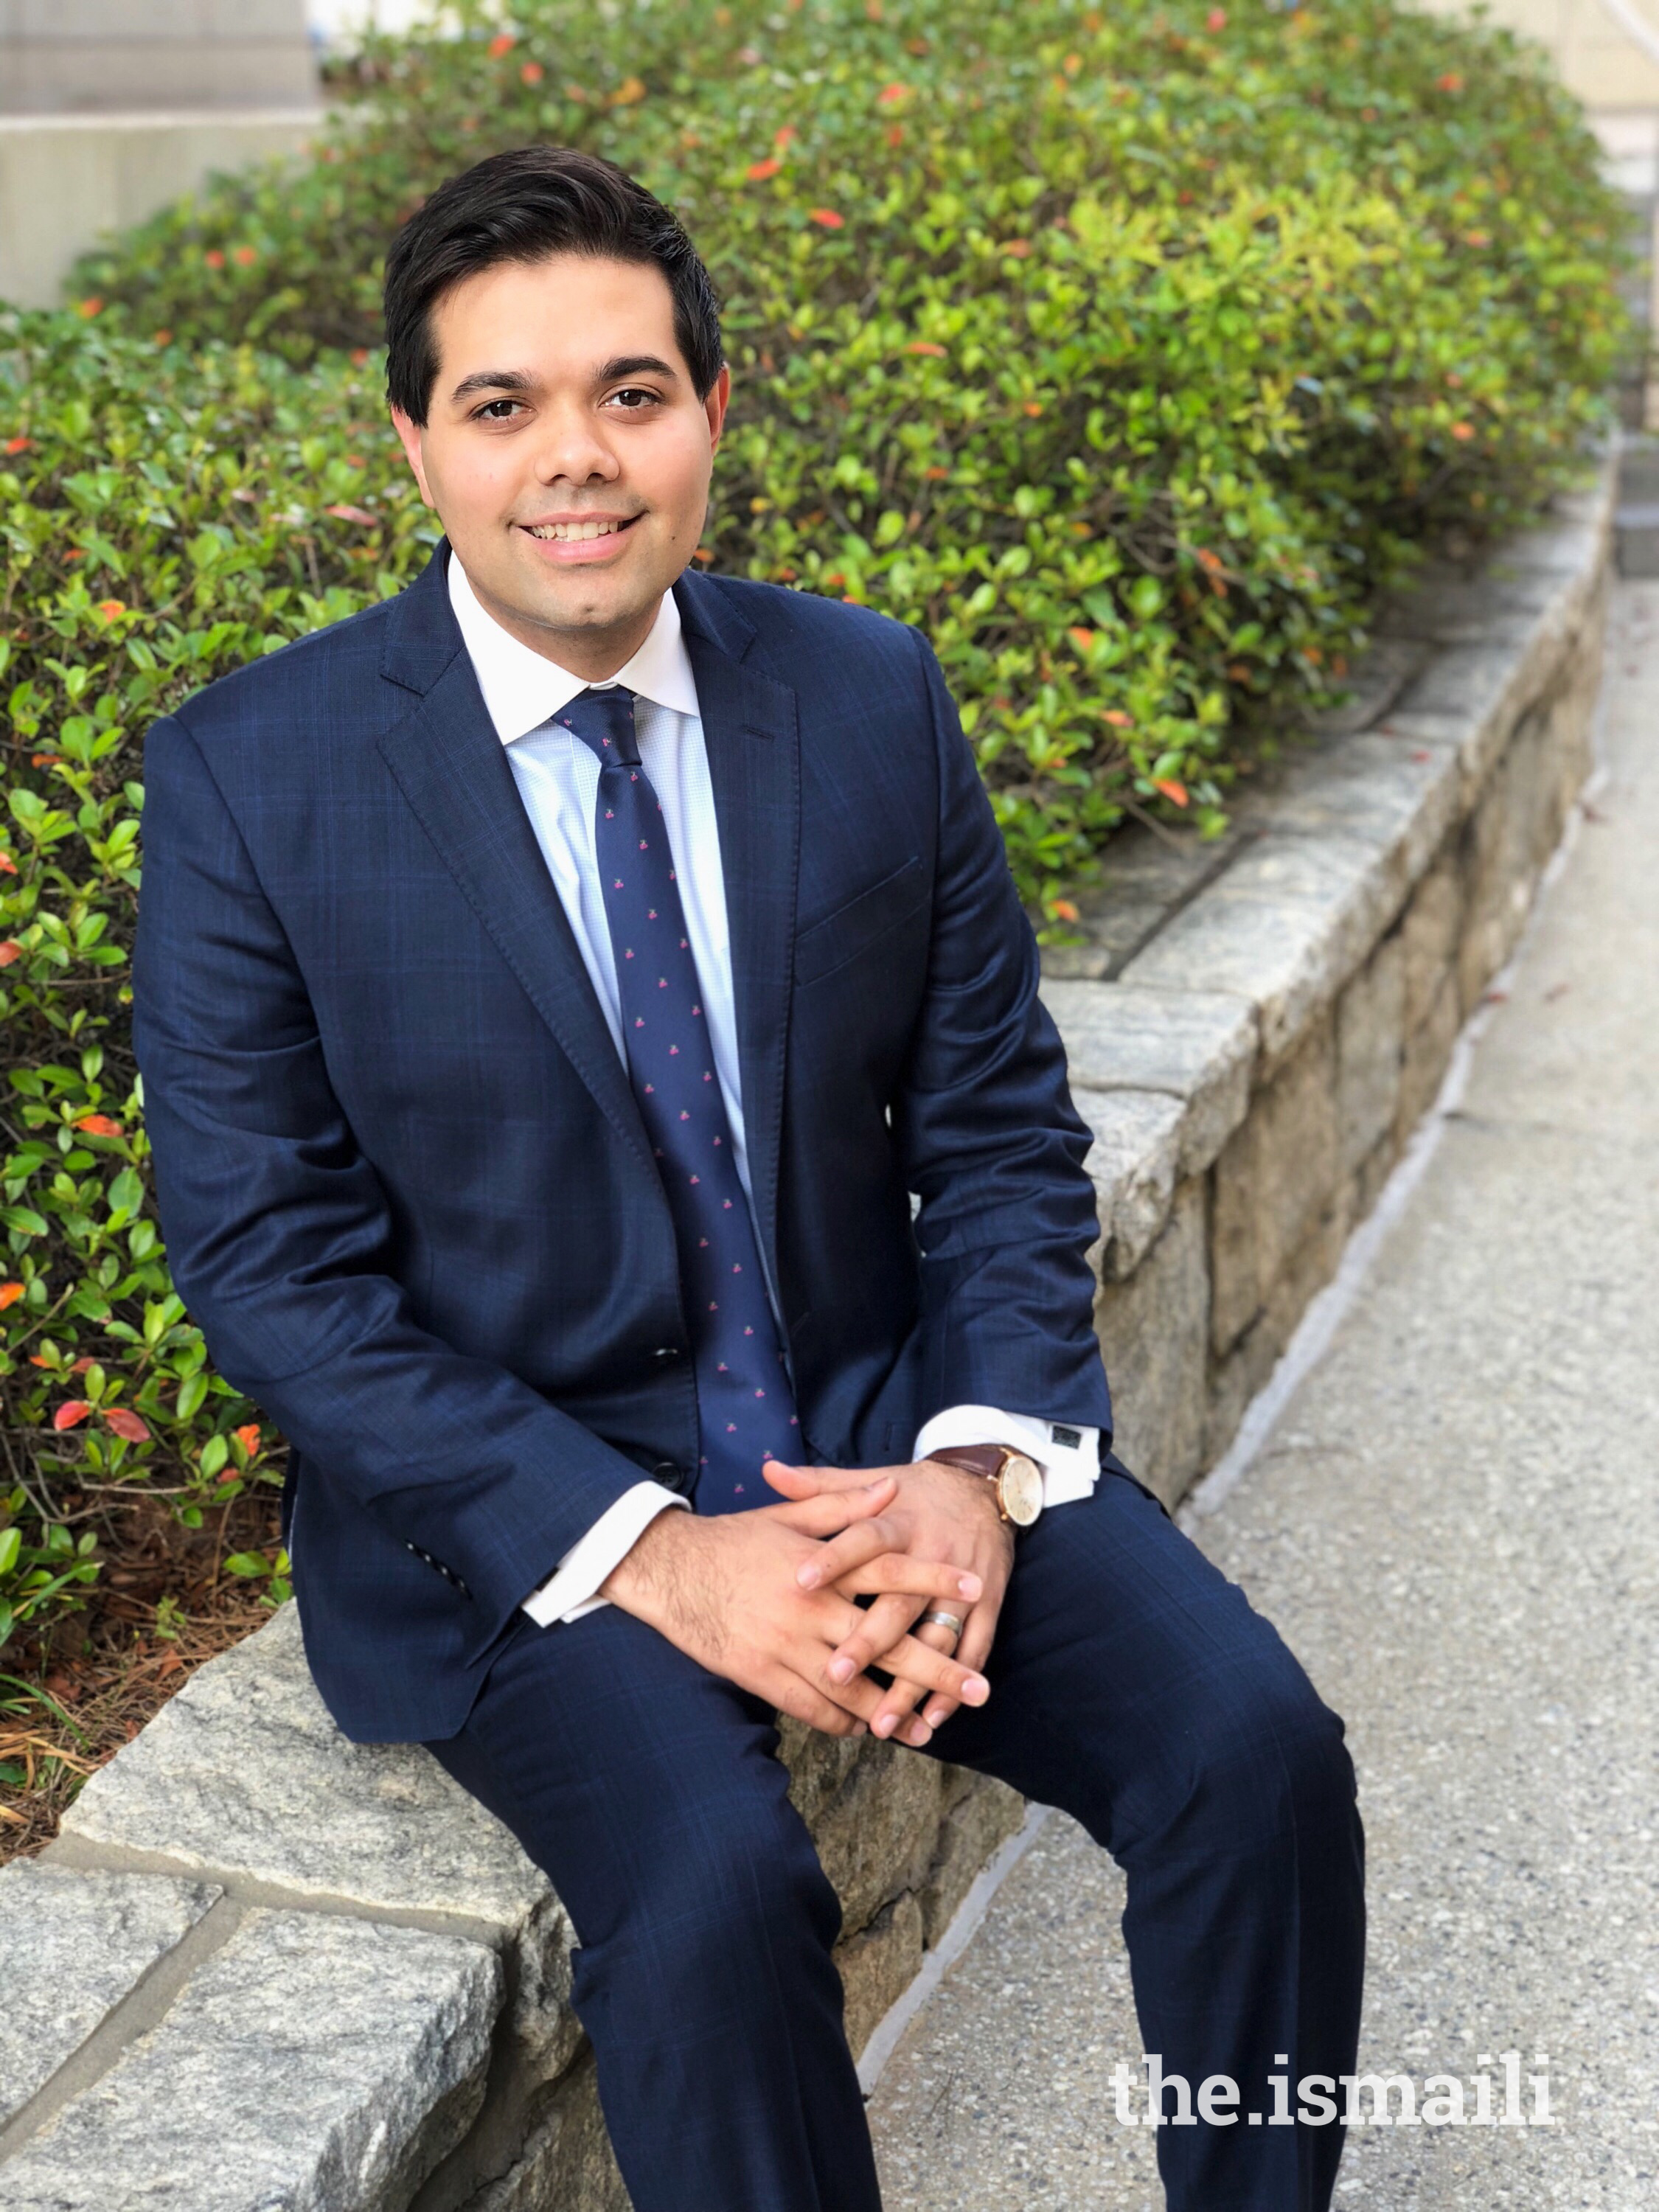 Asad Abdulla, an honoree of the 2018 Emory University Alumni Association 40 Under 40 Award was recognized his community service and leadership.